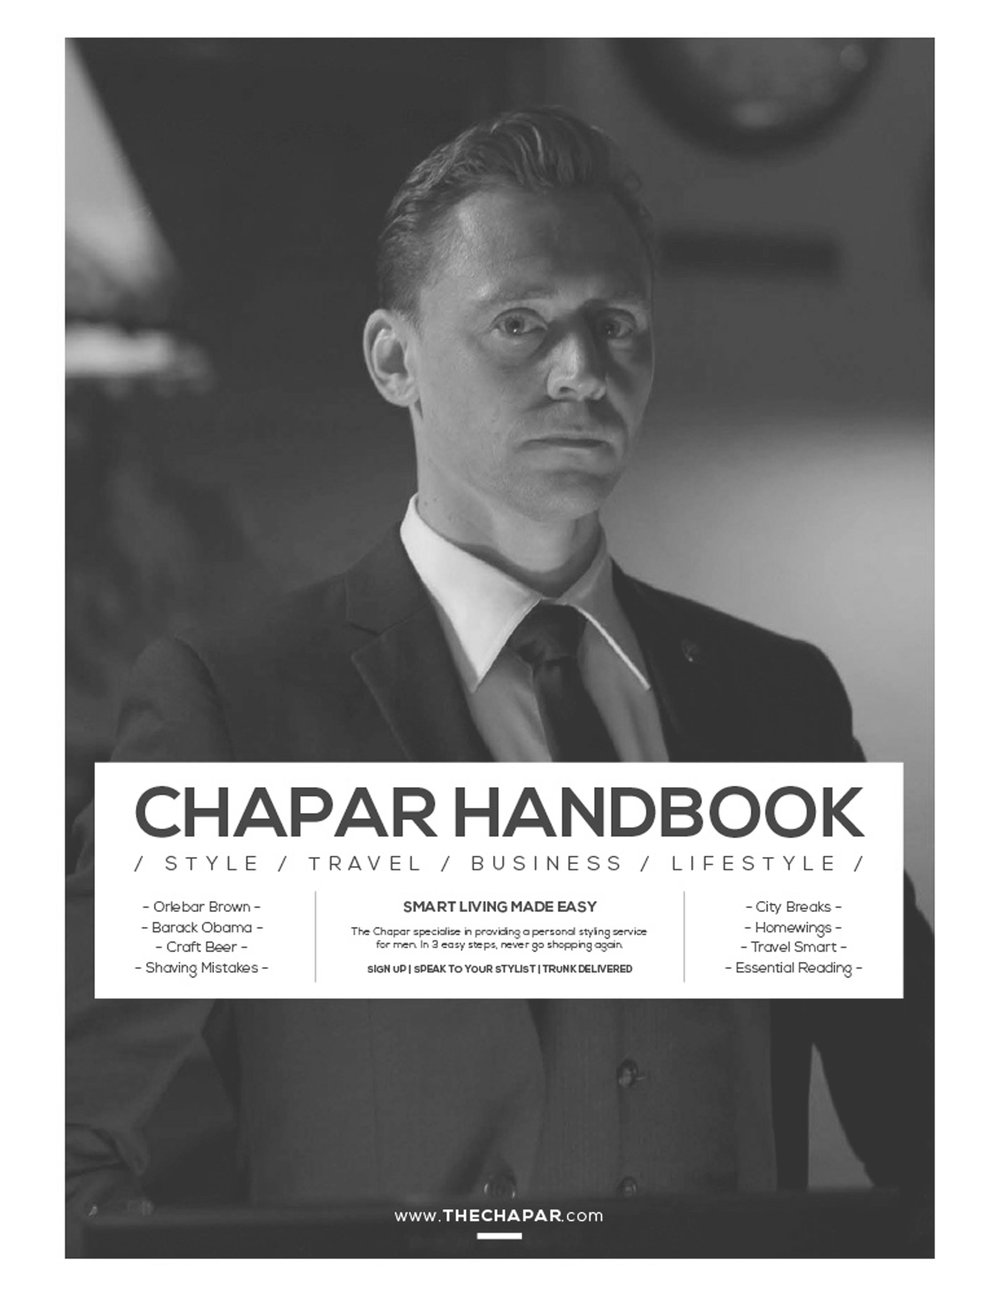 www.thechapar.com   The Chapar Handbook is the perfect companion for every Chapar Man - those that love clothes, but hate to shop! The Handbook delivers the latest on quality fashion, culture and travel.   See issue one here.